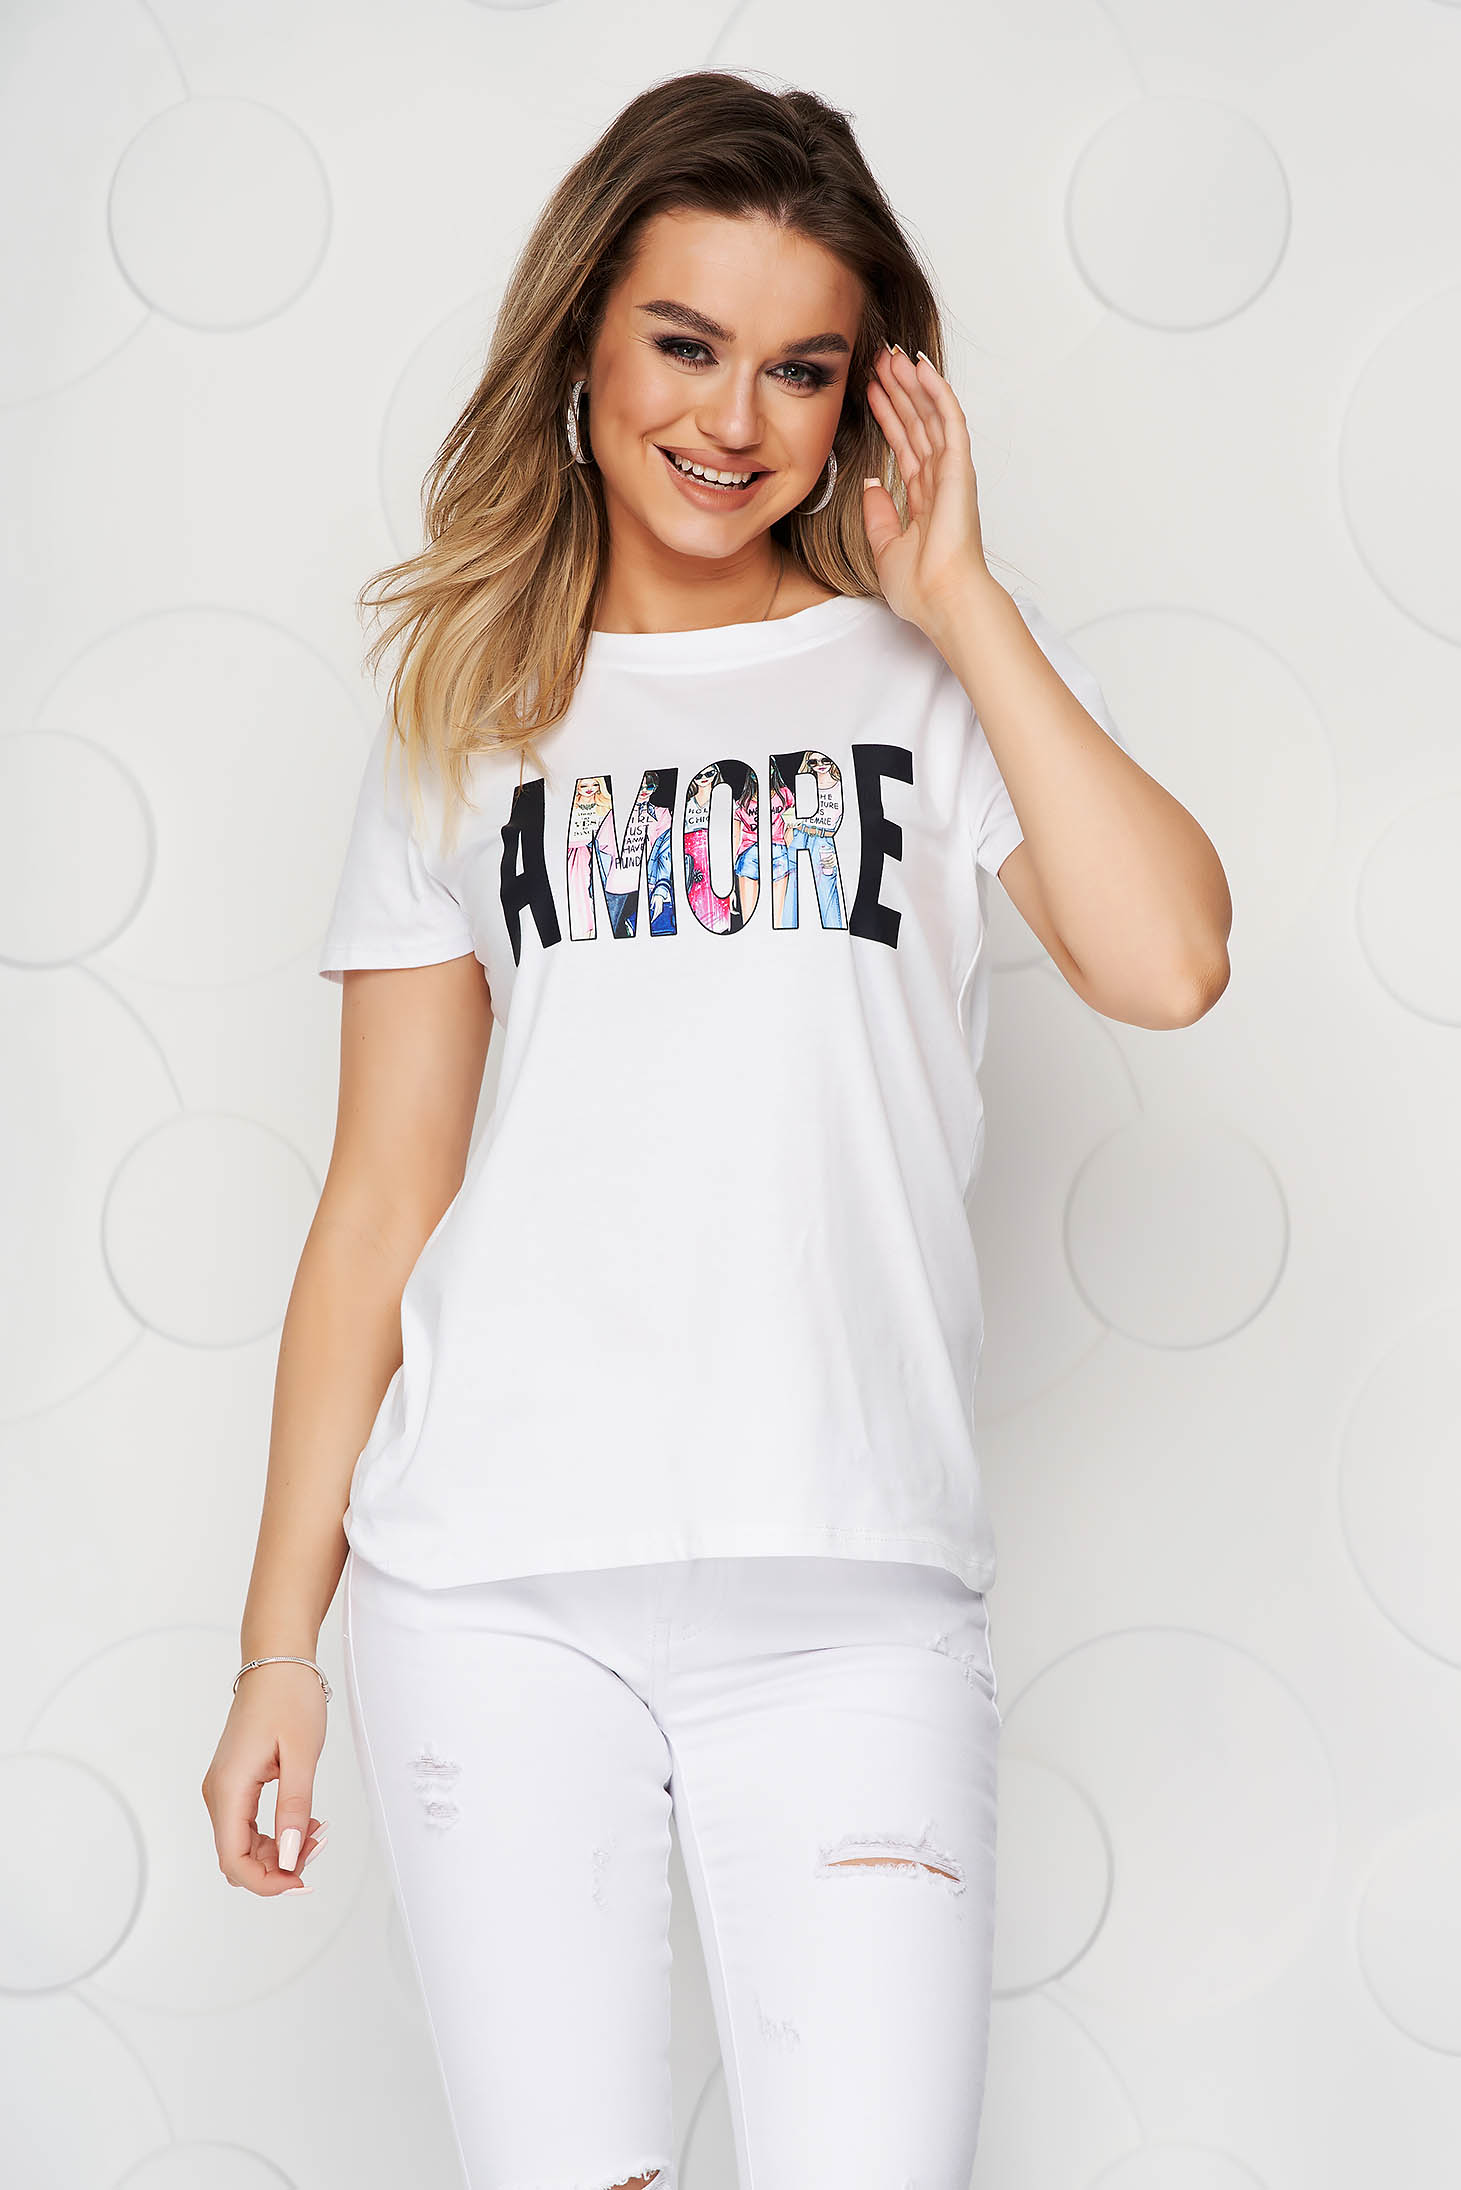 White t-shirt elastic cotton loose fit with graphic details